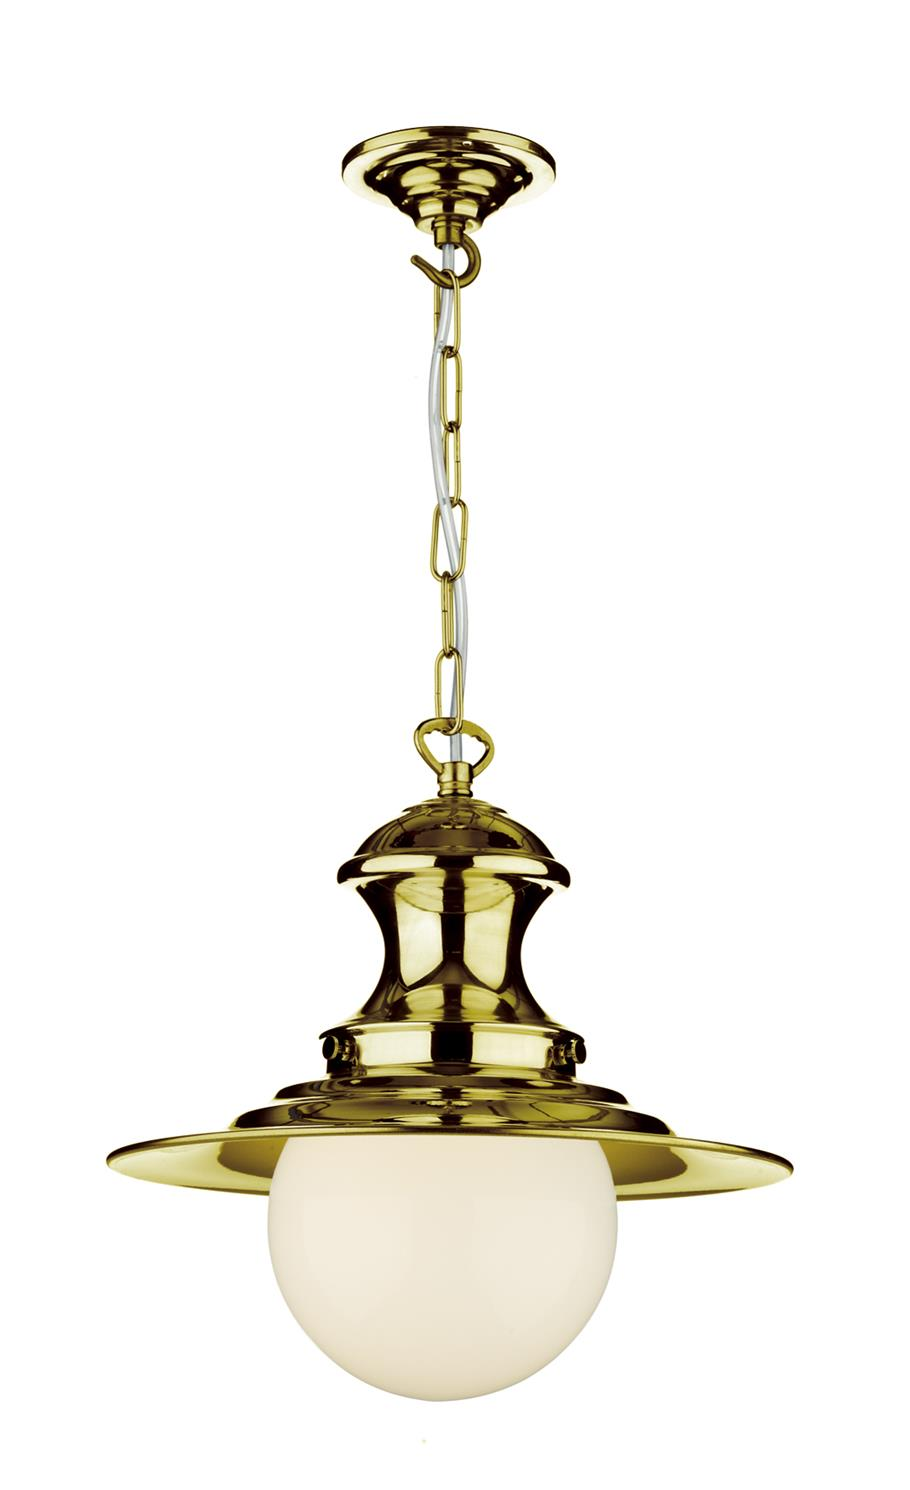 David Hunt Lighting EP0140 Station Small Single Pendant in Polished Brass